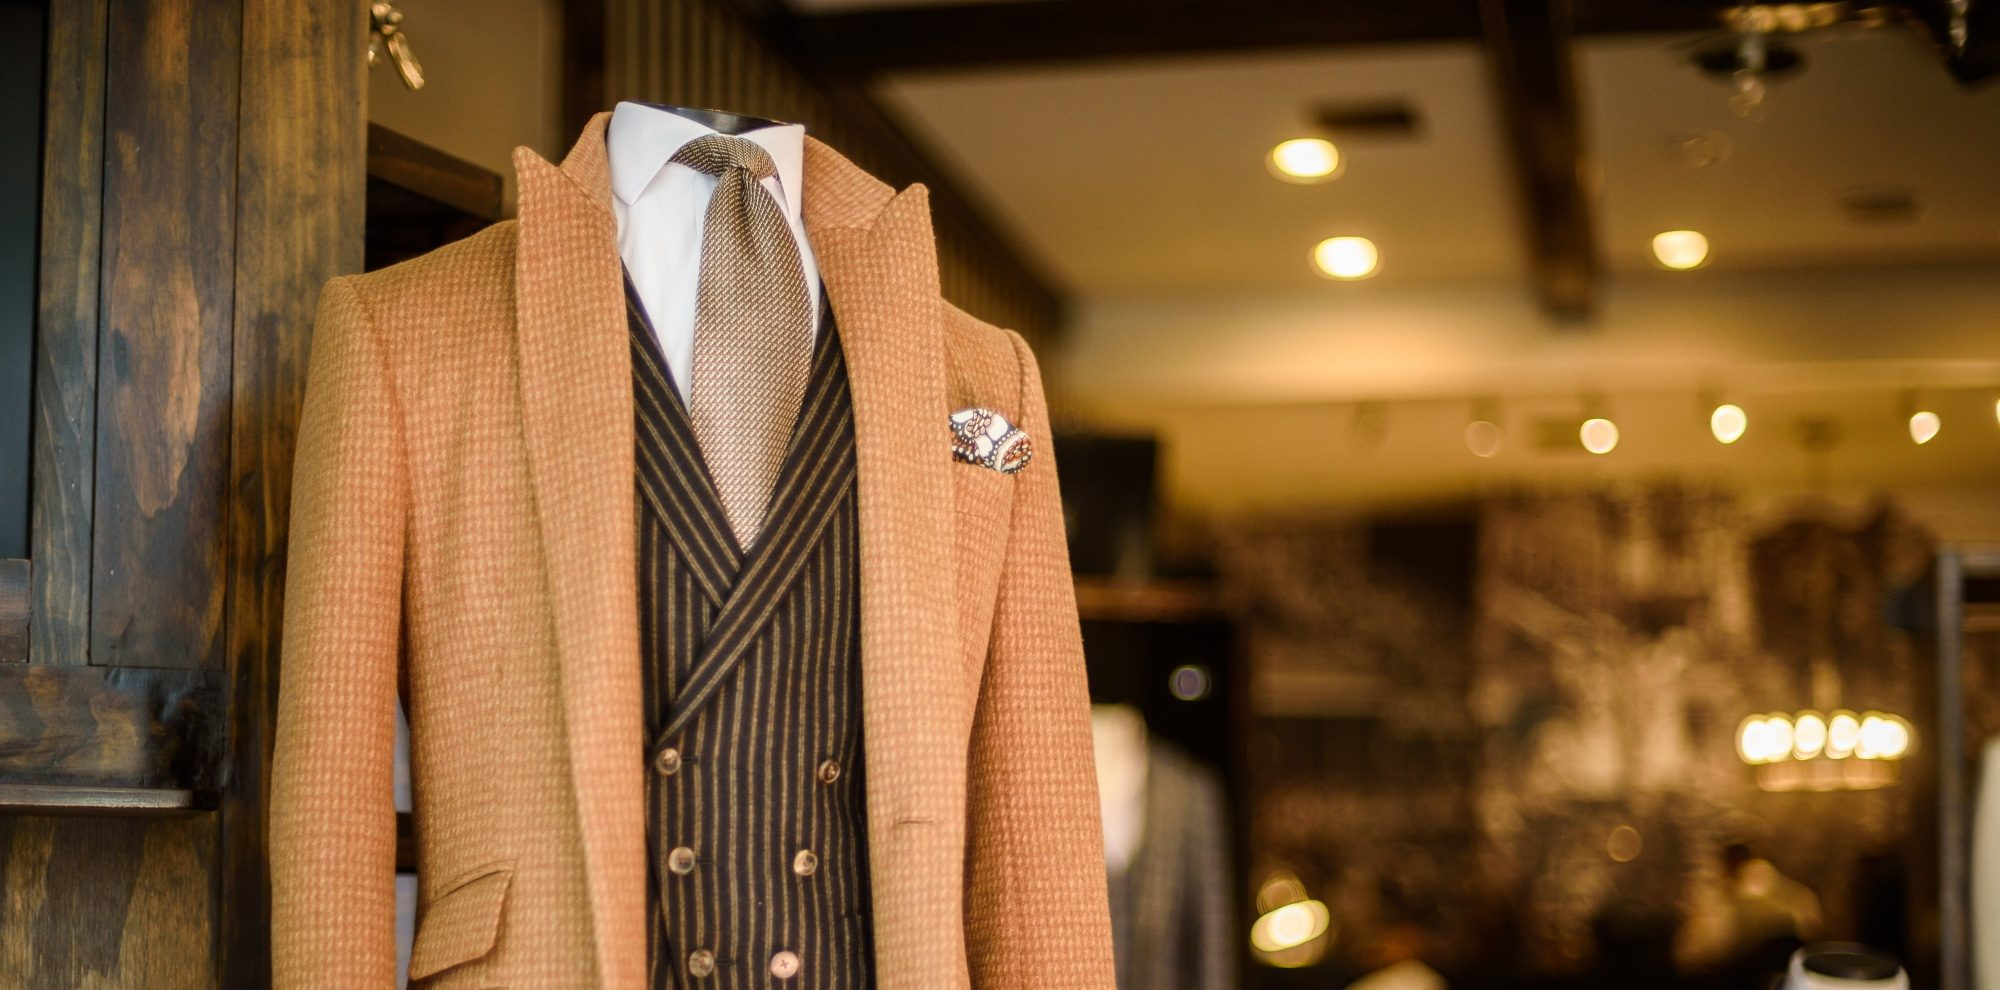 Luca falcone custom made clothing custom made clothing for the discerning man buycottarizona Image collections